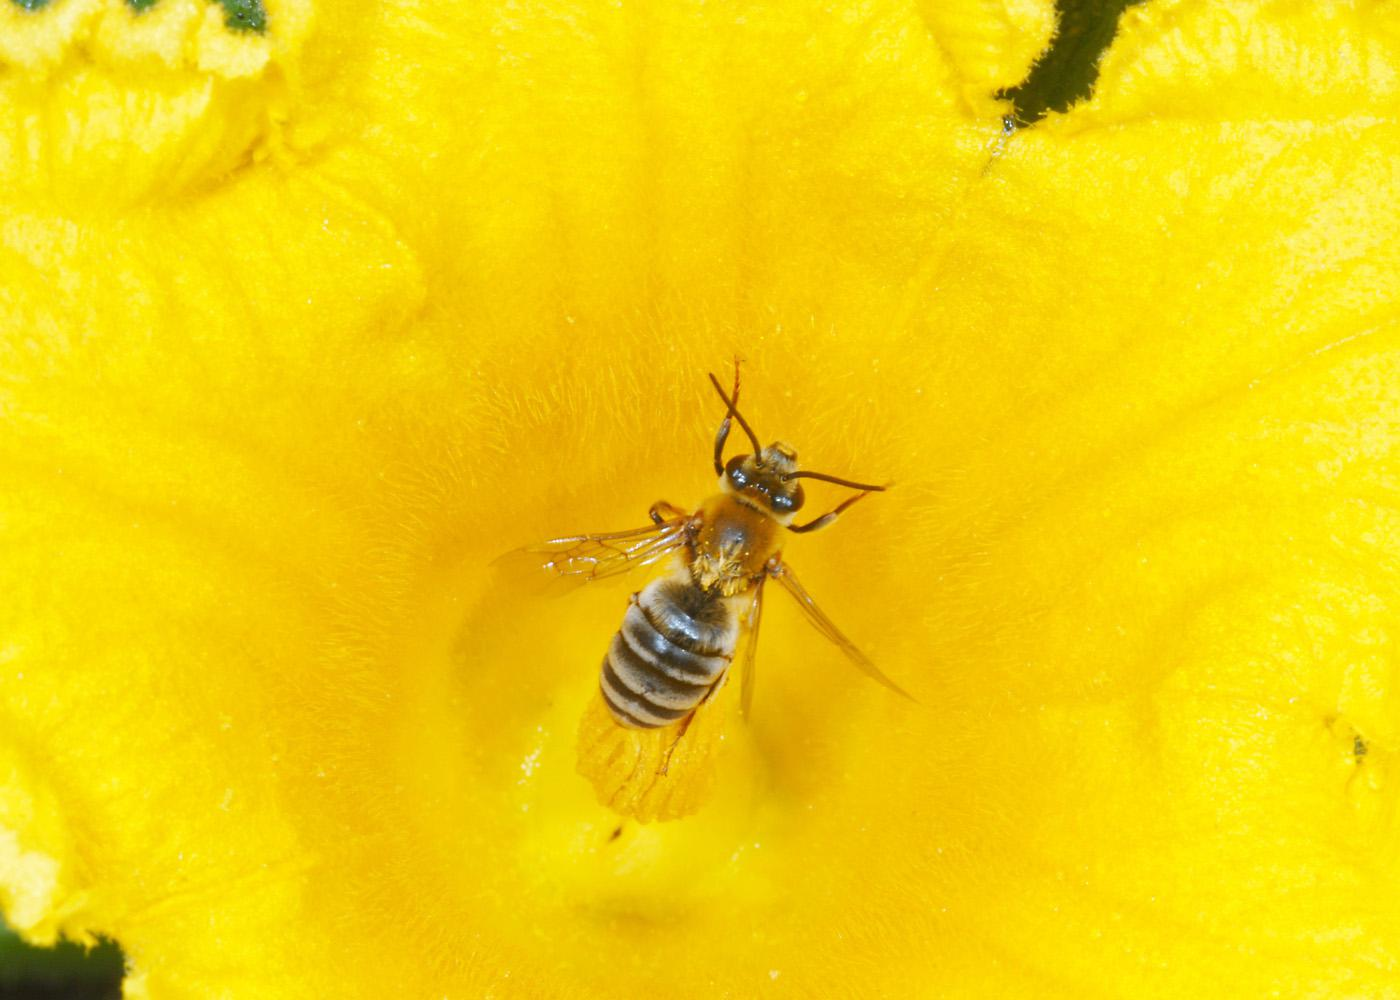 Squash bees are solitary, native insects that specialize in pollinating squashes, pumpkins and gourds. Unlike honey bees, squash bees are not social and nest in the ground. (Photo courtesy of Blake Layton)